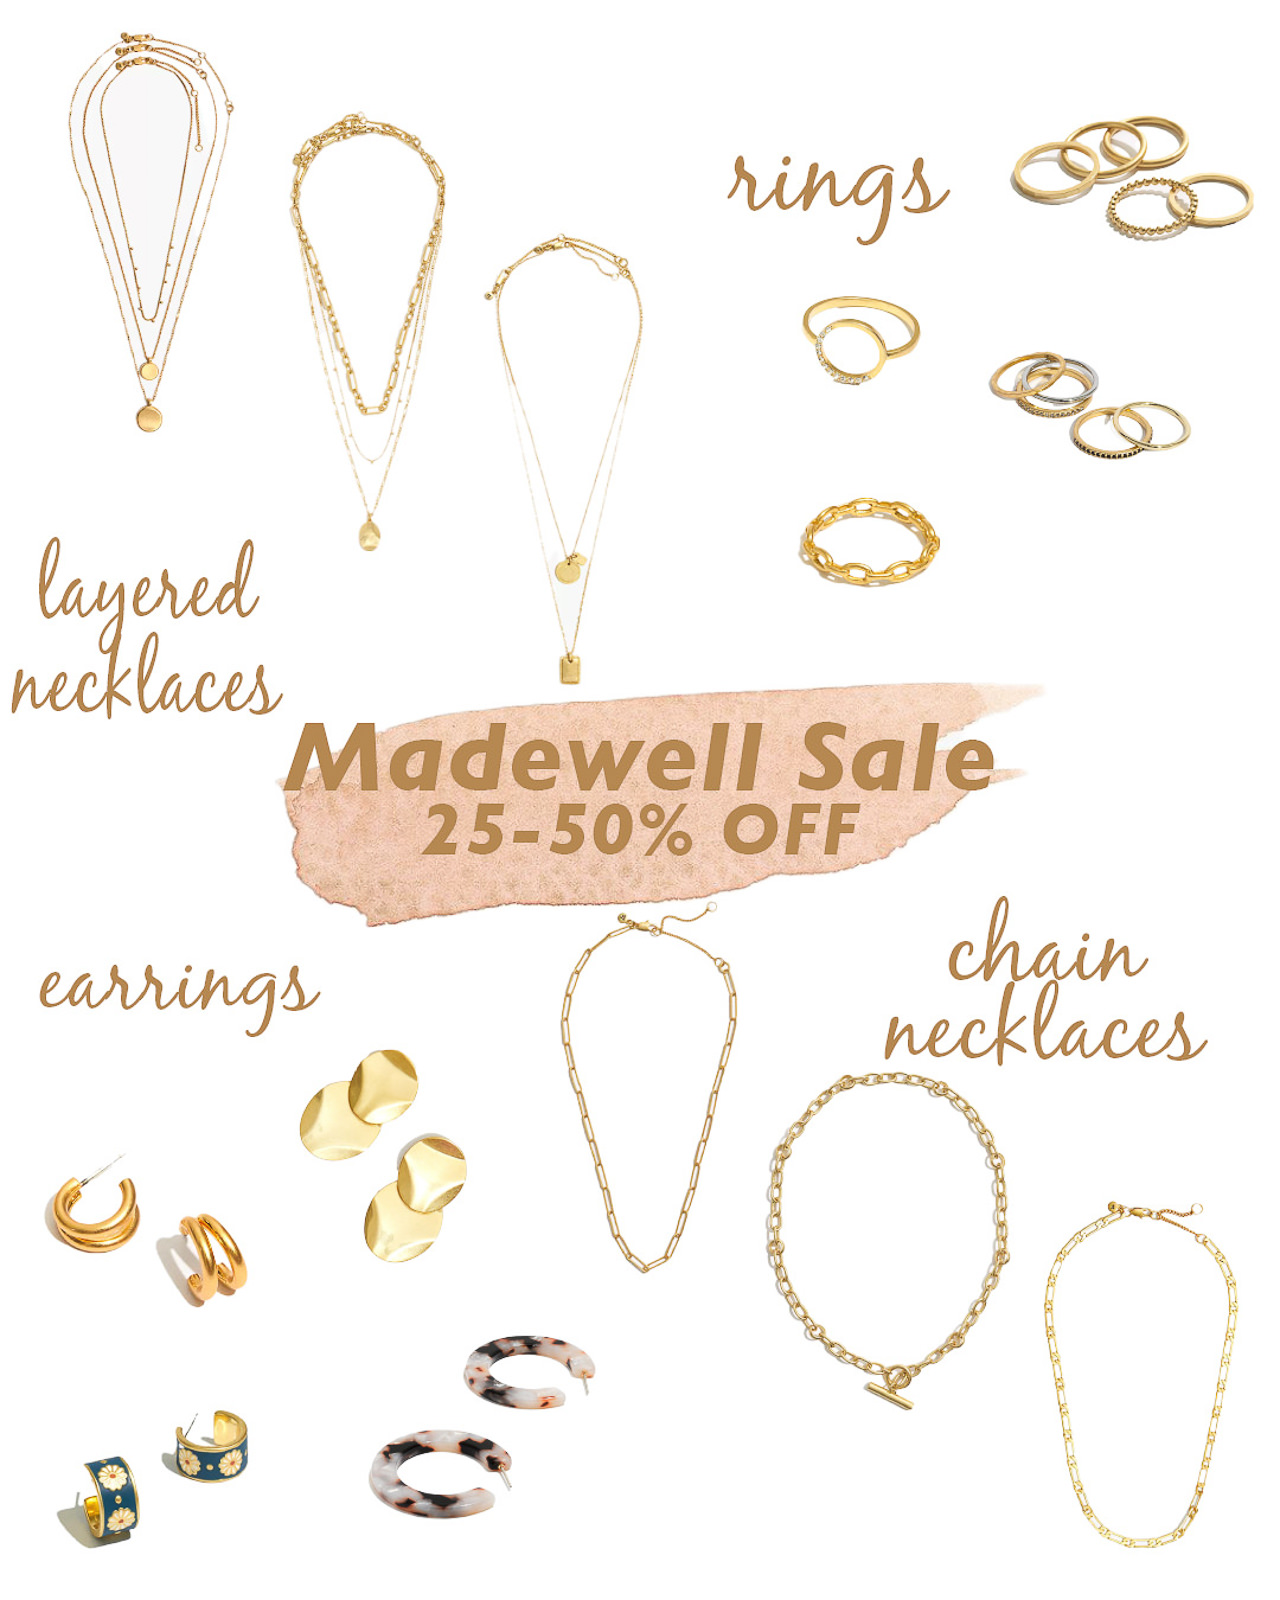 madewell sale jewelry